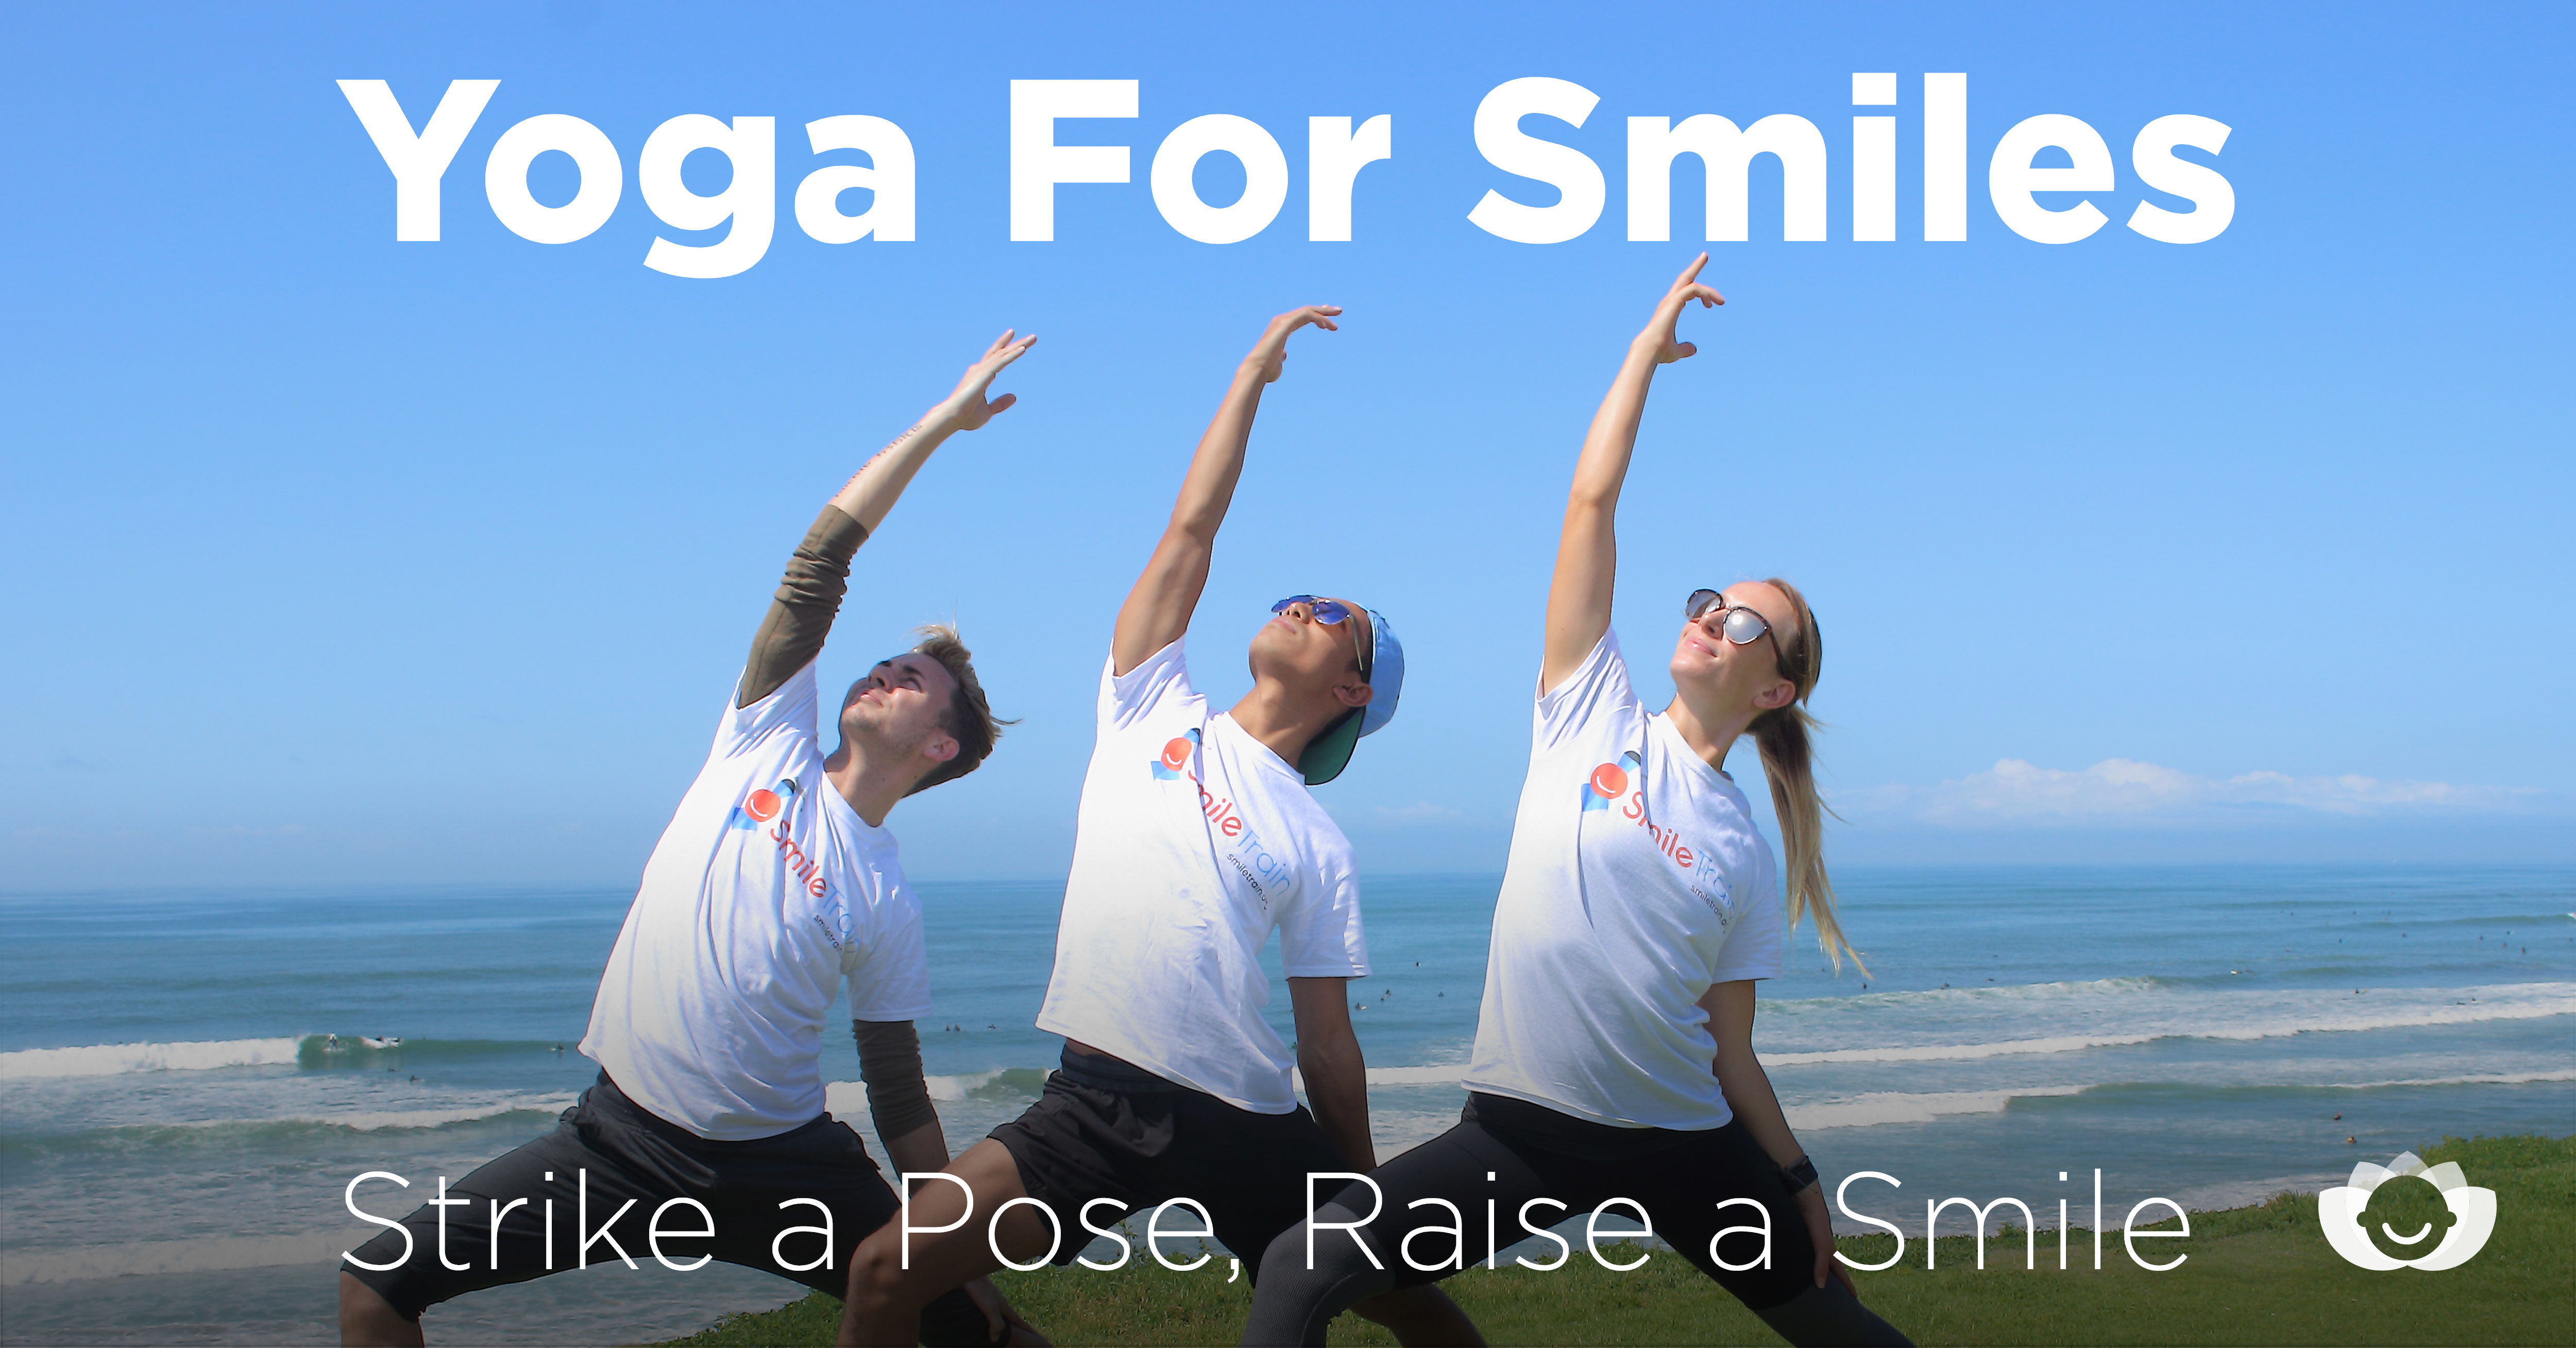 Yoga-For-Smiles-Social-Post-FB_0